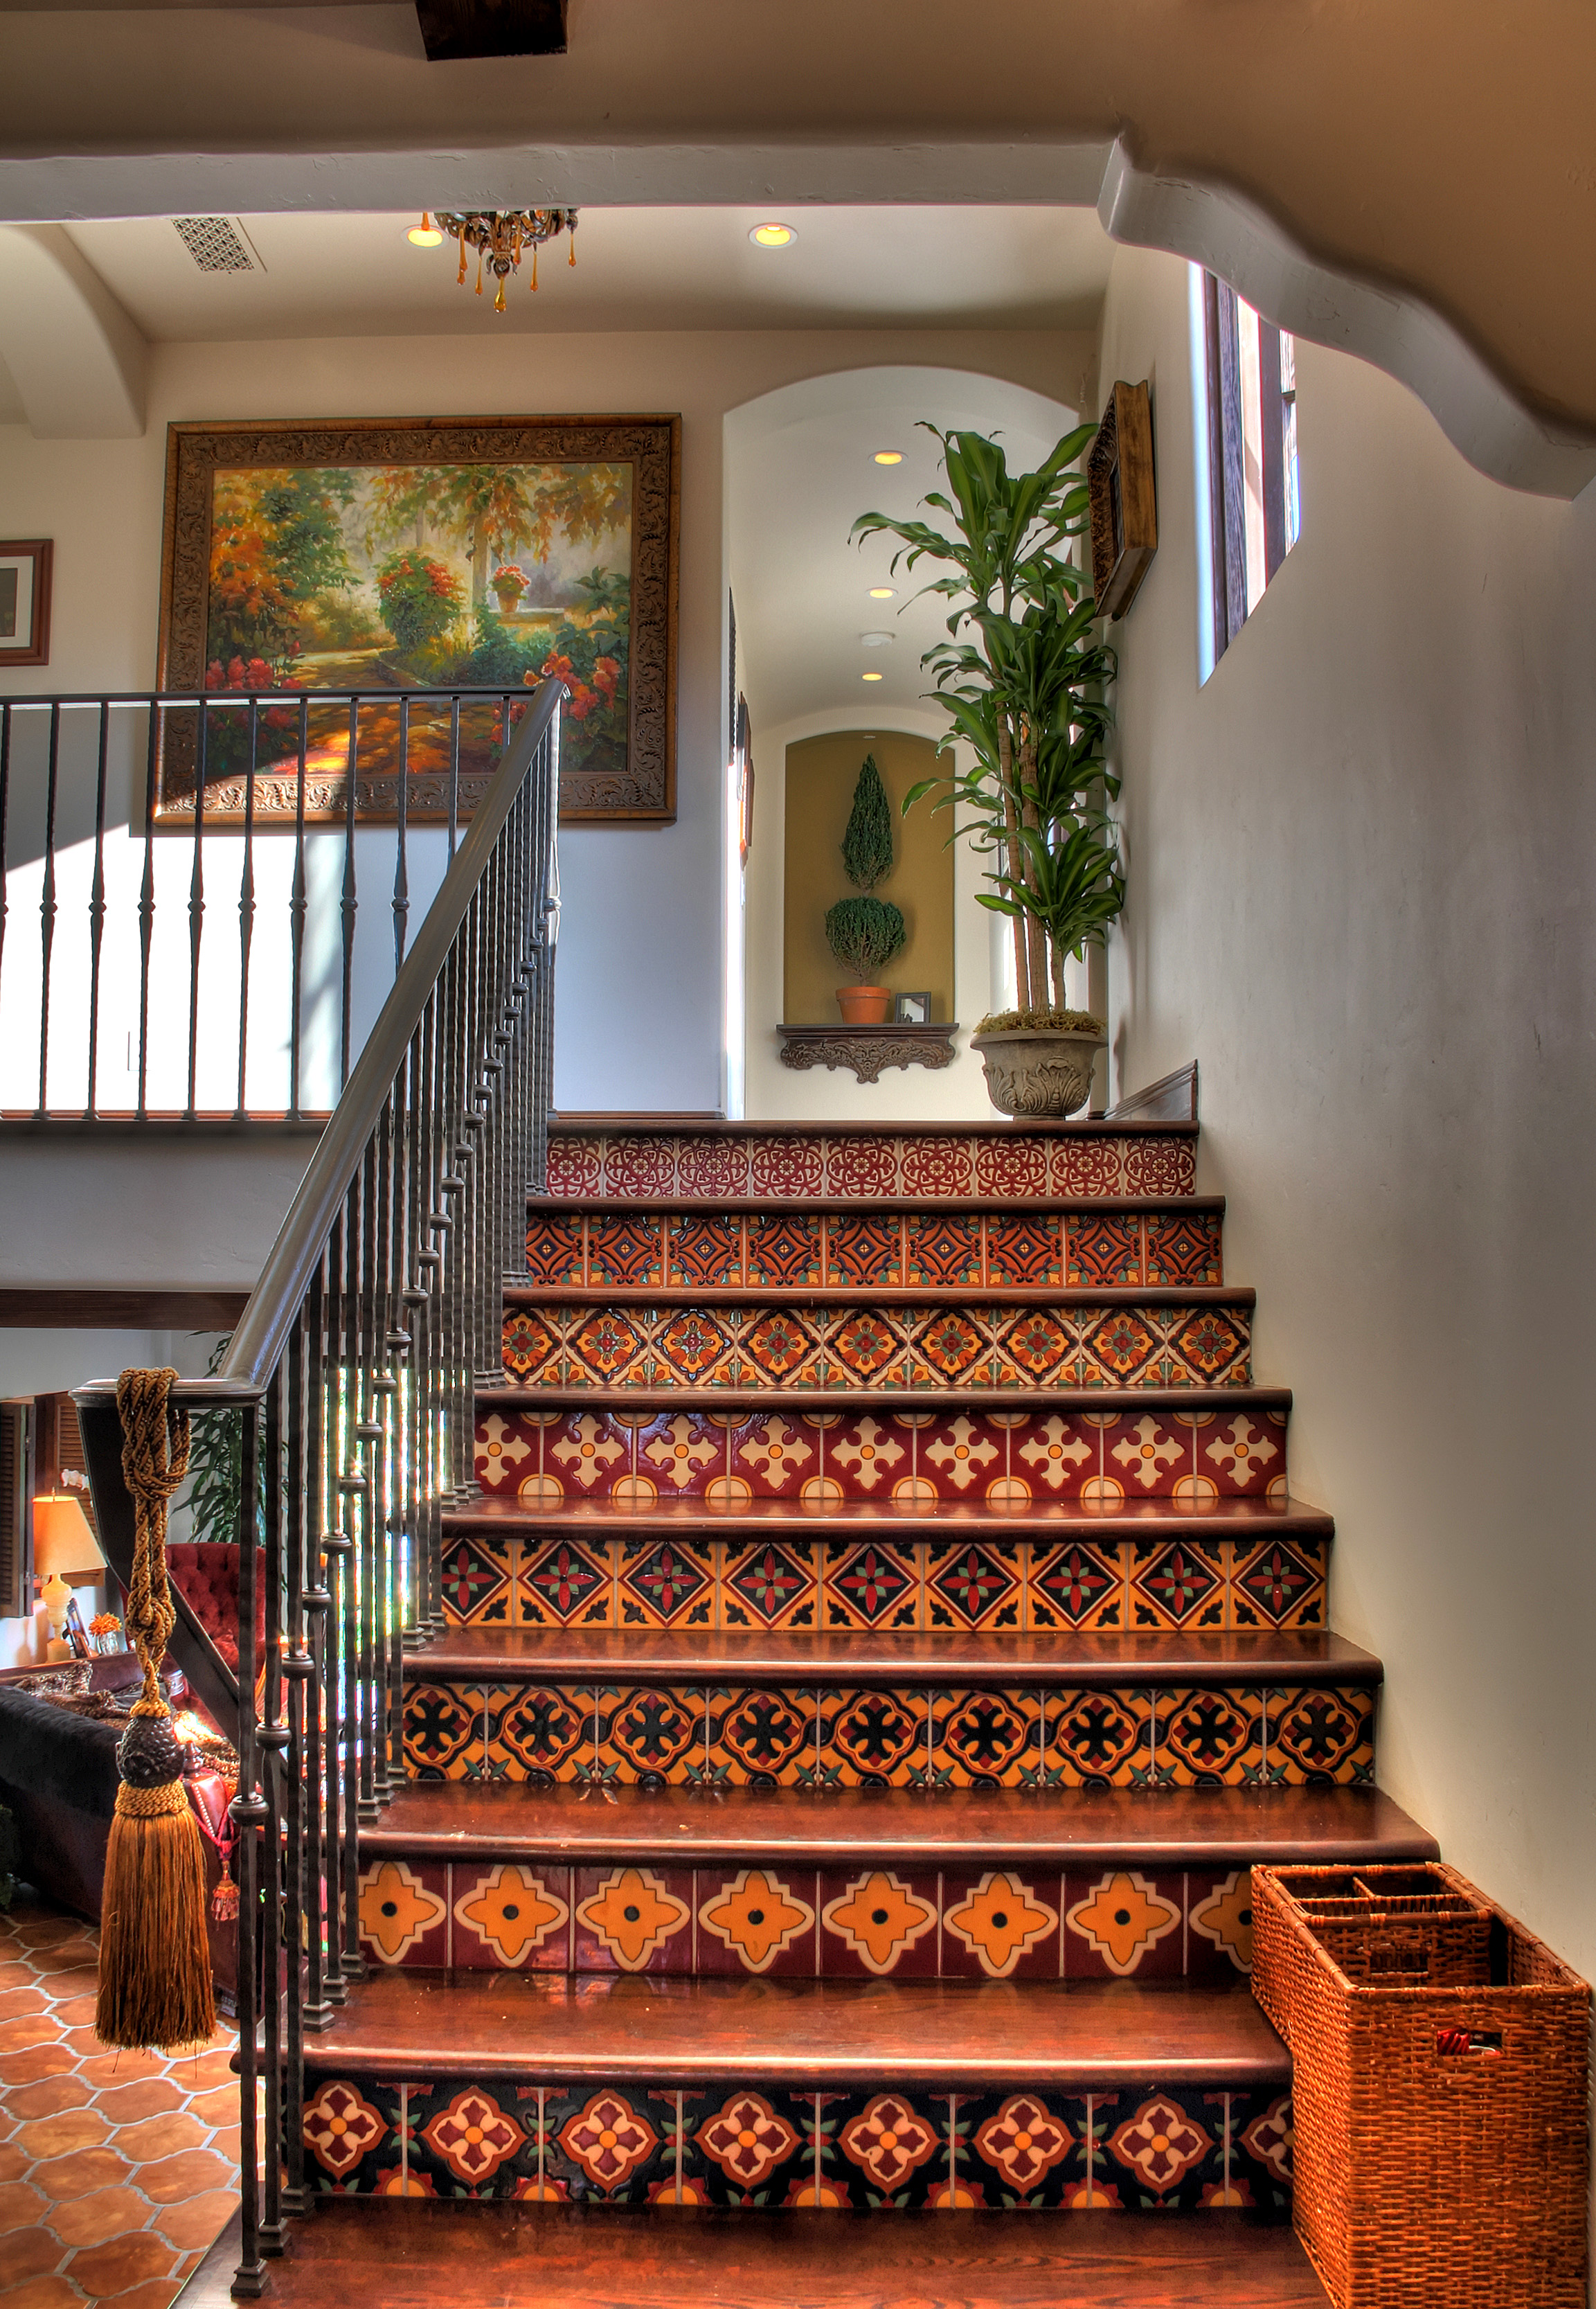 1920s Spanish Bungalow Plans: Sweet Digs: Old L.A. Reincarnated: A Modern-day Remodel